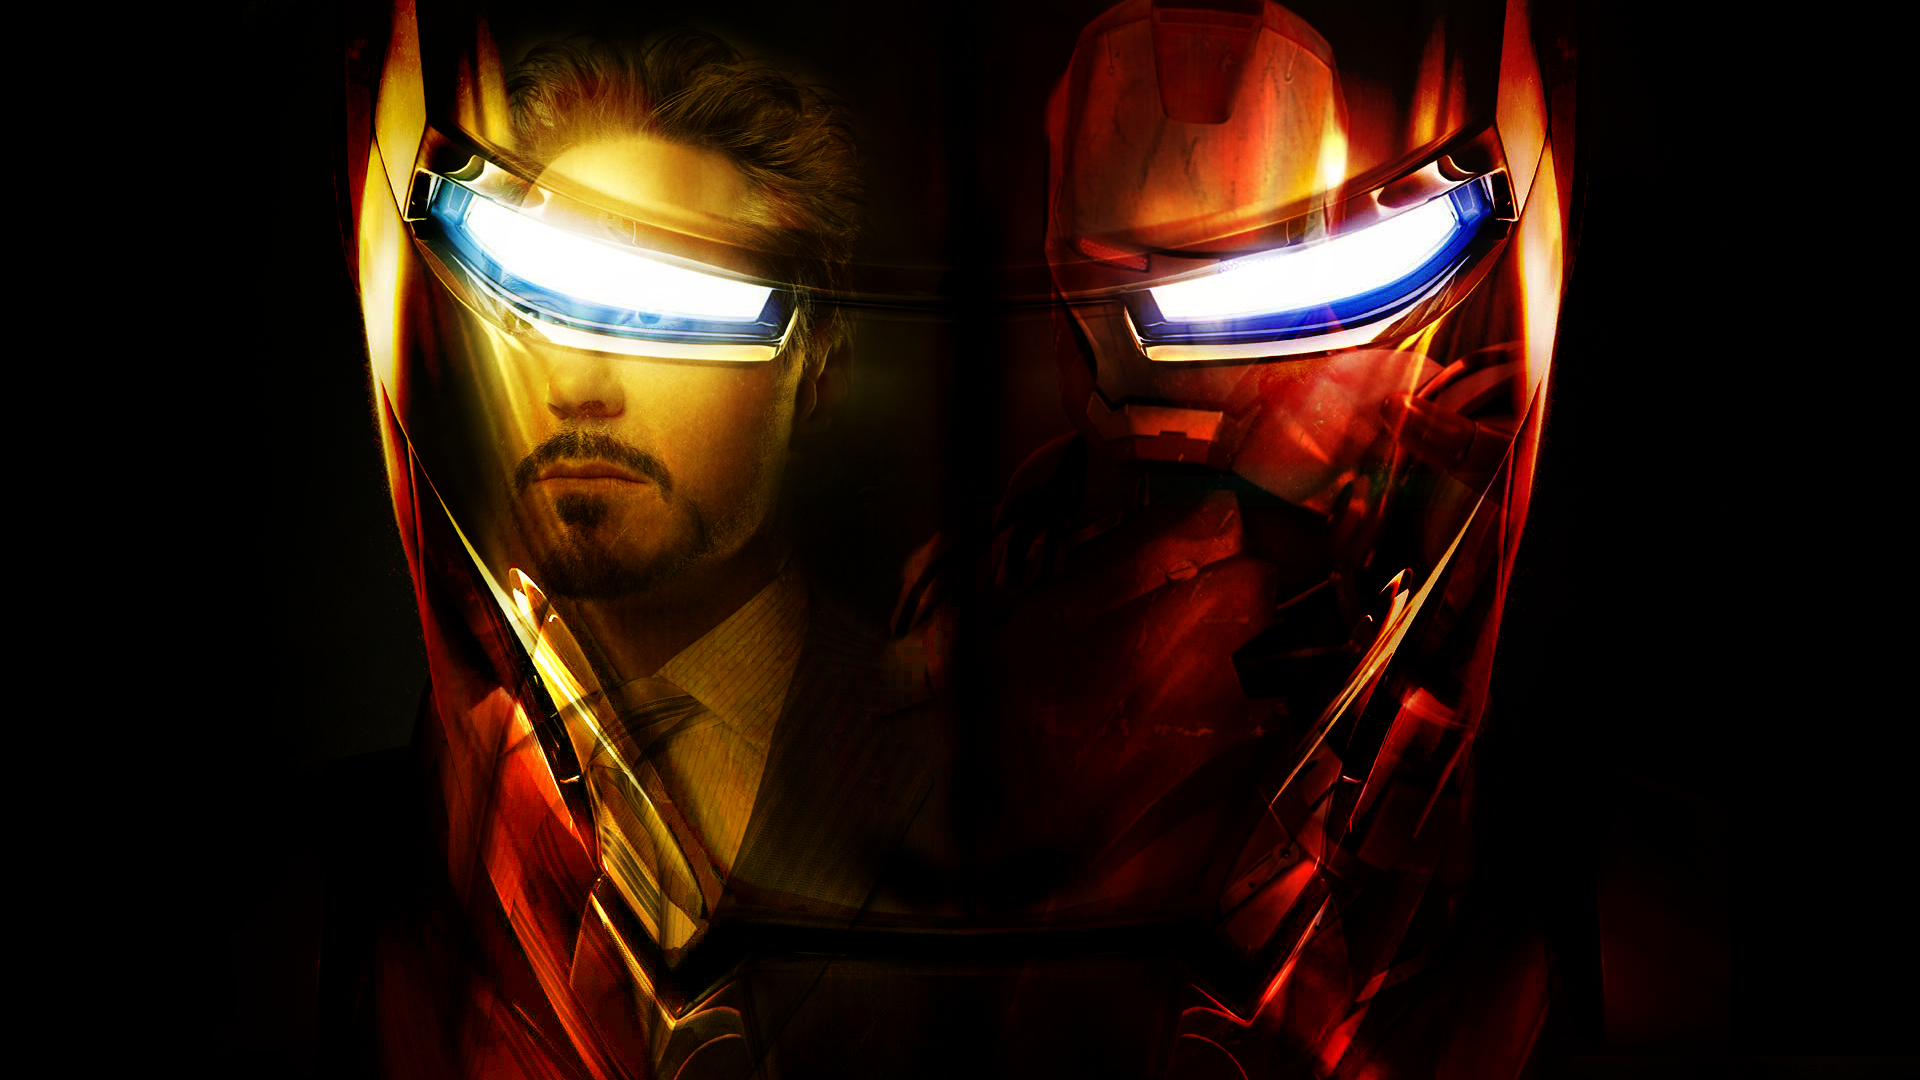 MCU Wallpaper collection Iron Man by hellofahedgehog on 1920x1080